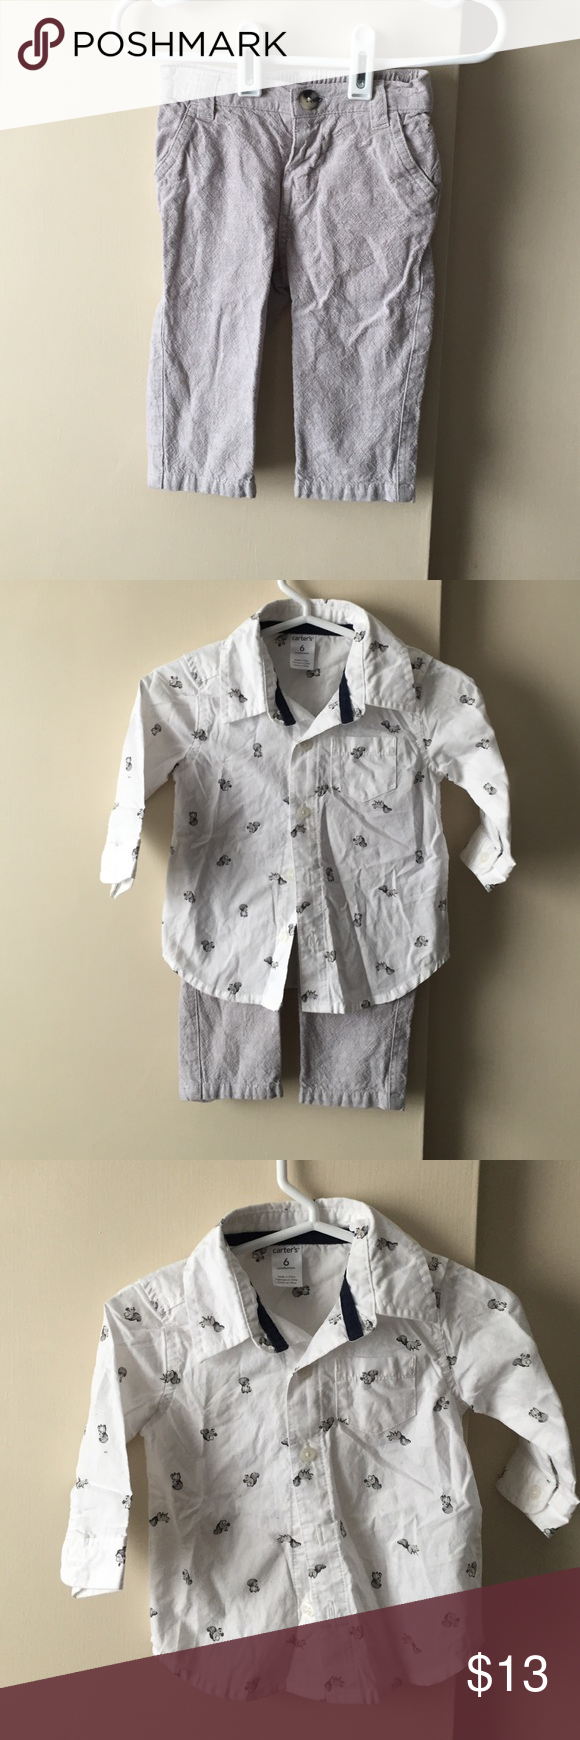 Baby button down shirt and pants Top: button down long sleeve shirt with squirrels. Carters size 6 months Bottom: gray pants koala baby size 6 months. Never worn! Matching Sets